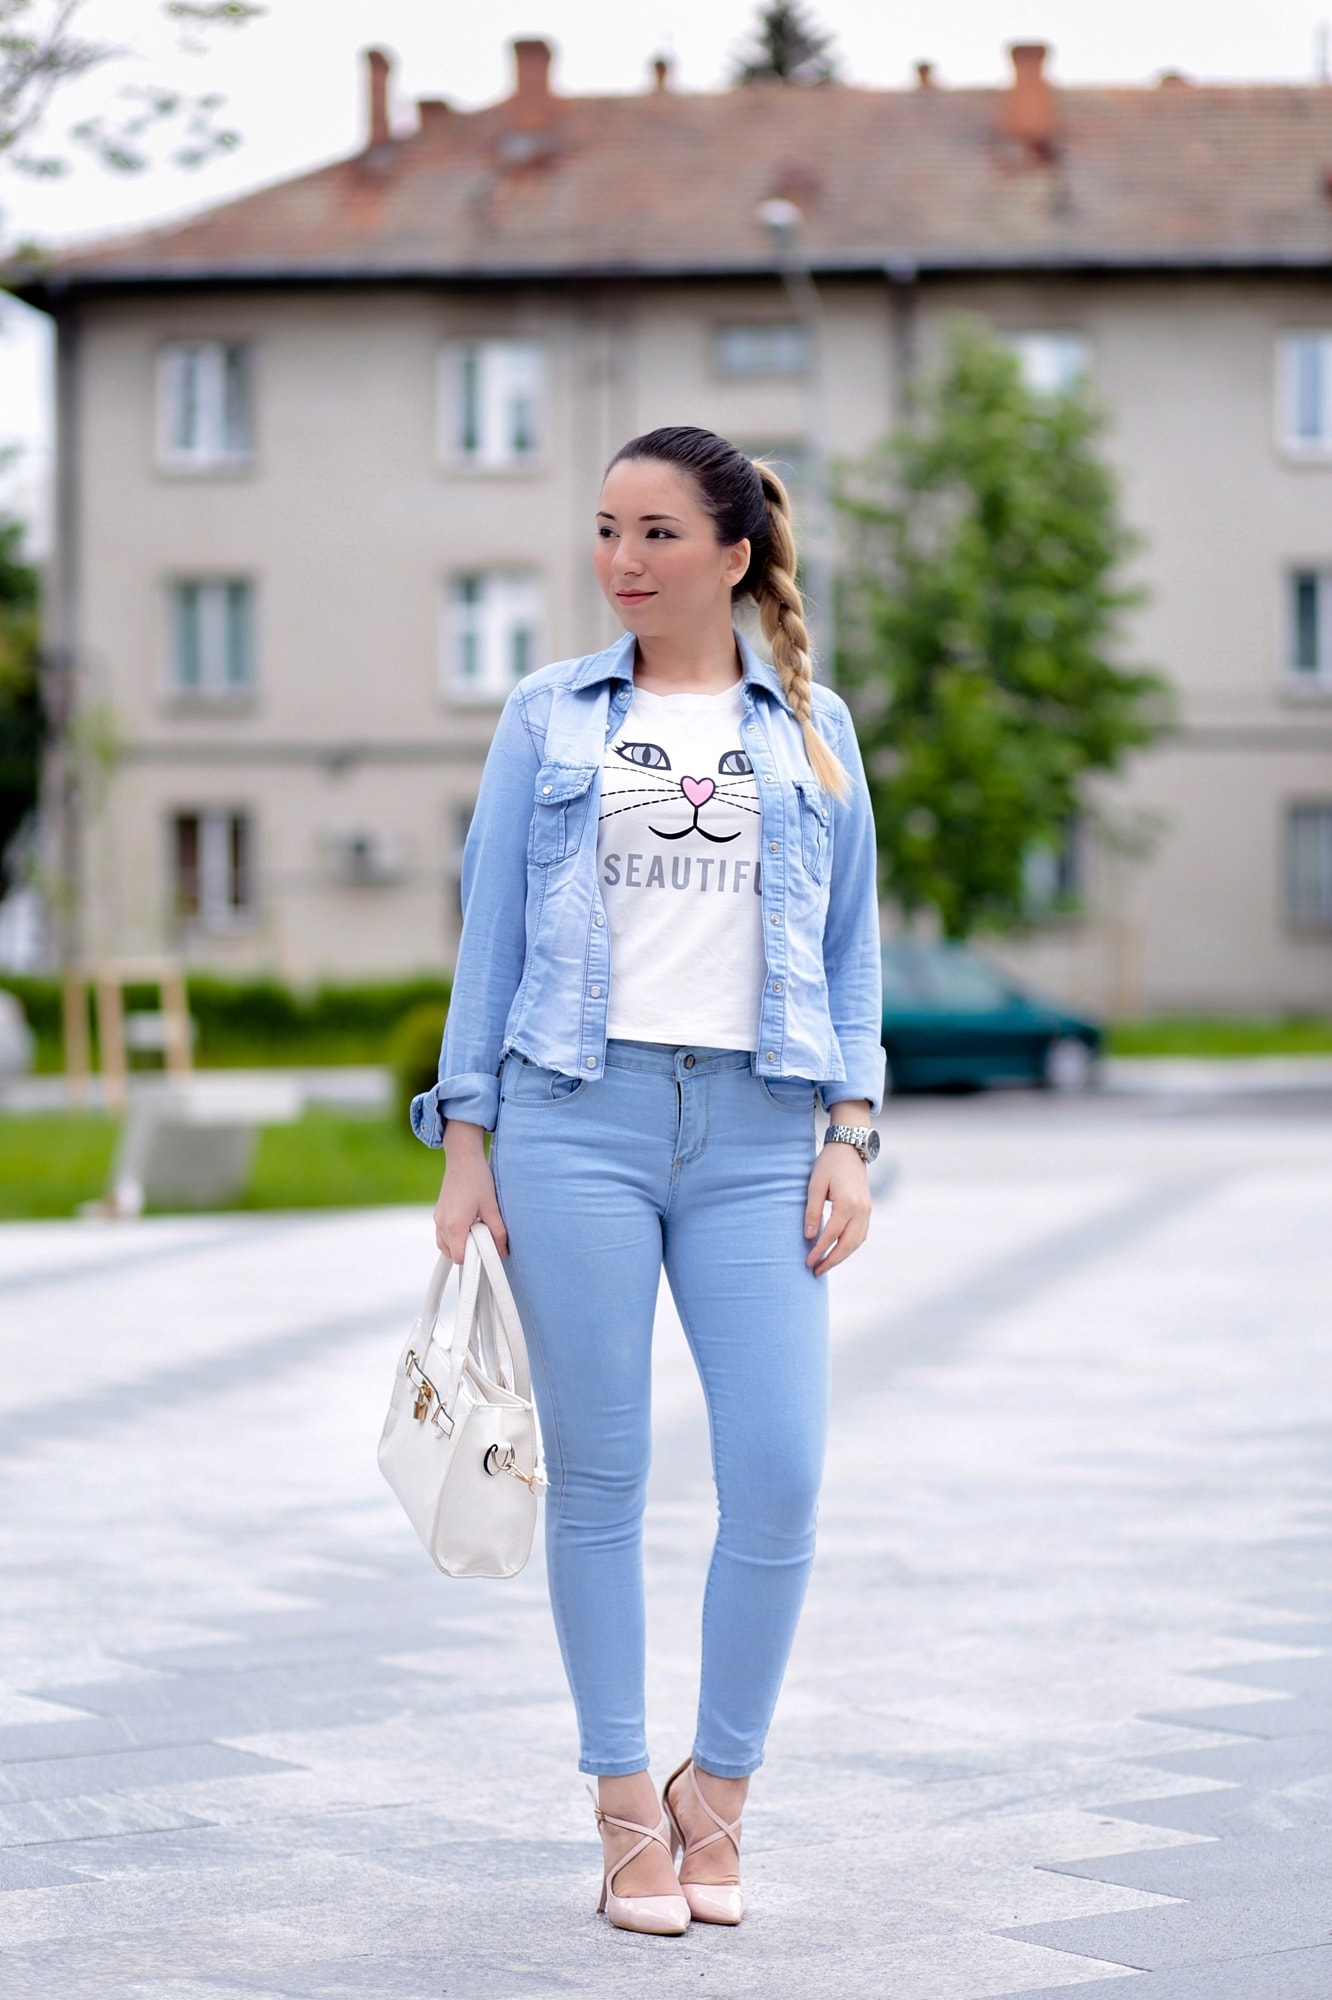 Street style: cum purtam denim on denim? Tendinte primavara vara 2016